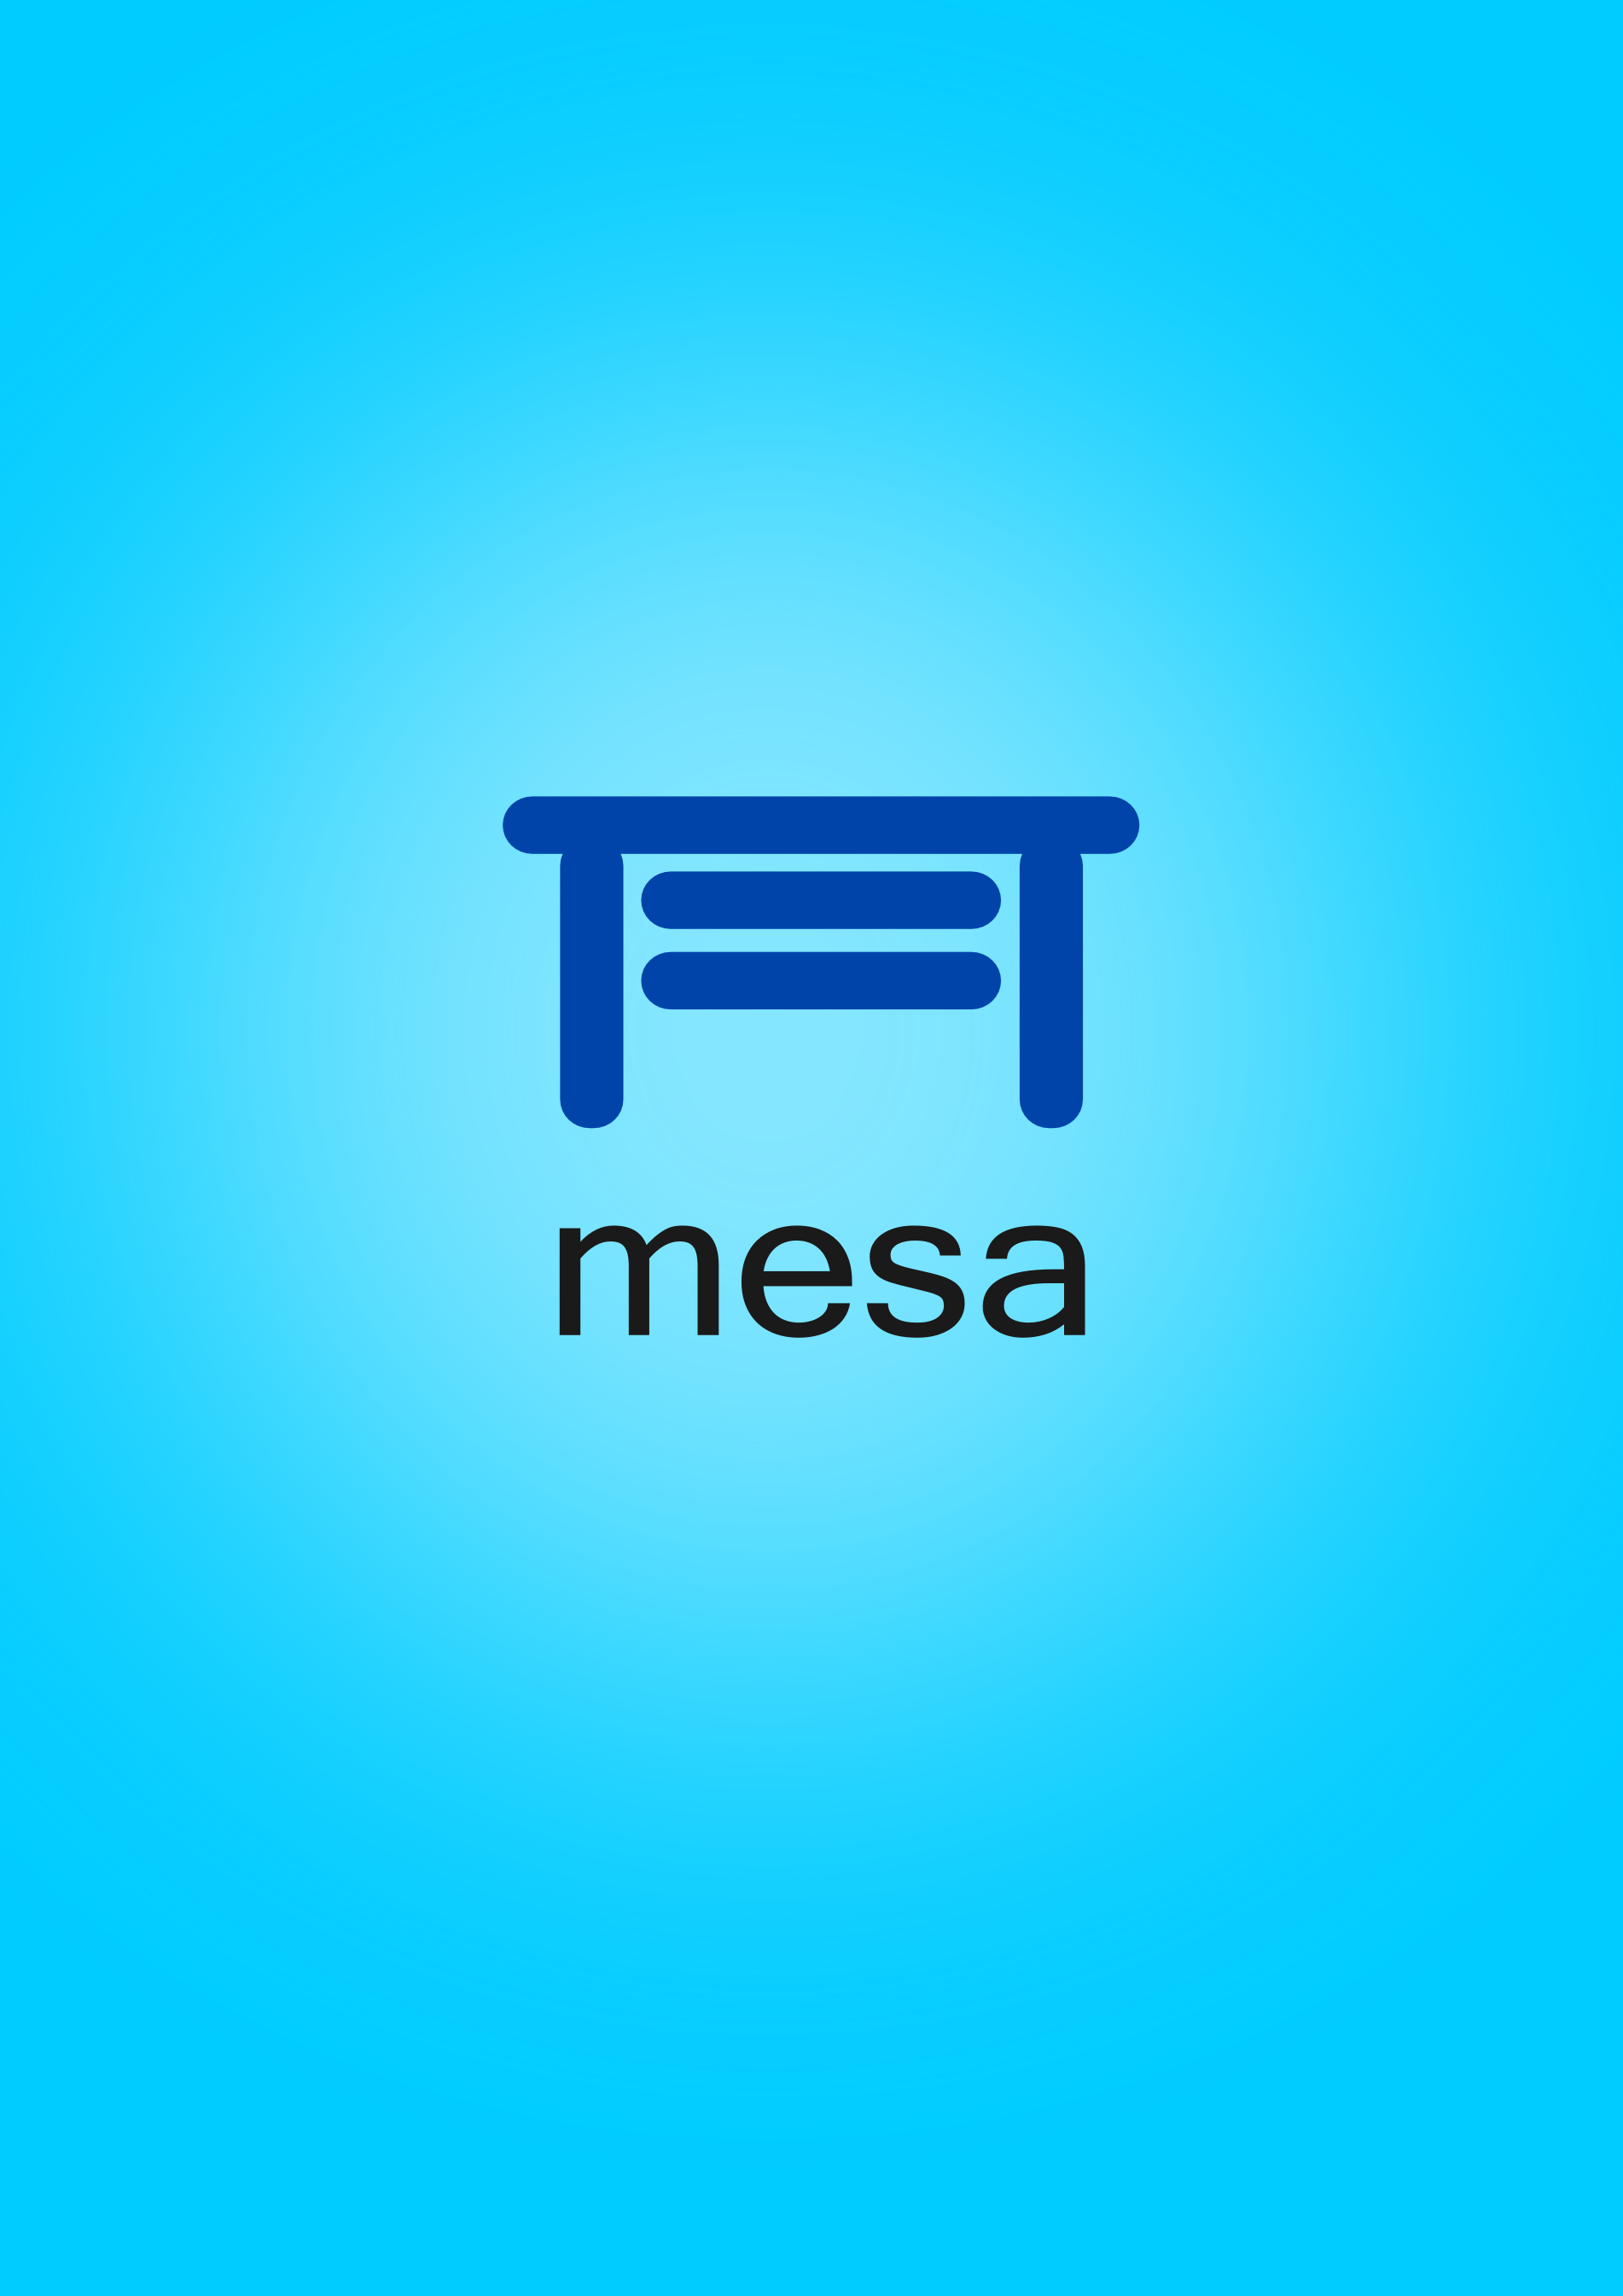 Logo Design by whoosef - Entry No. 186 in the Logo Design Contest Logo Design for Mesa.